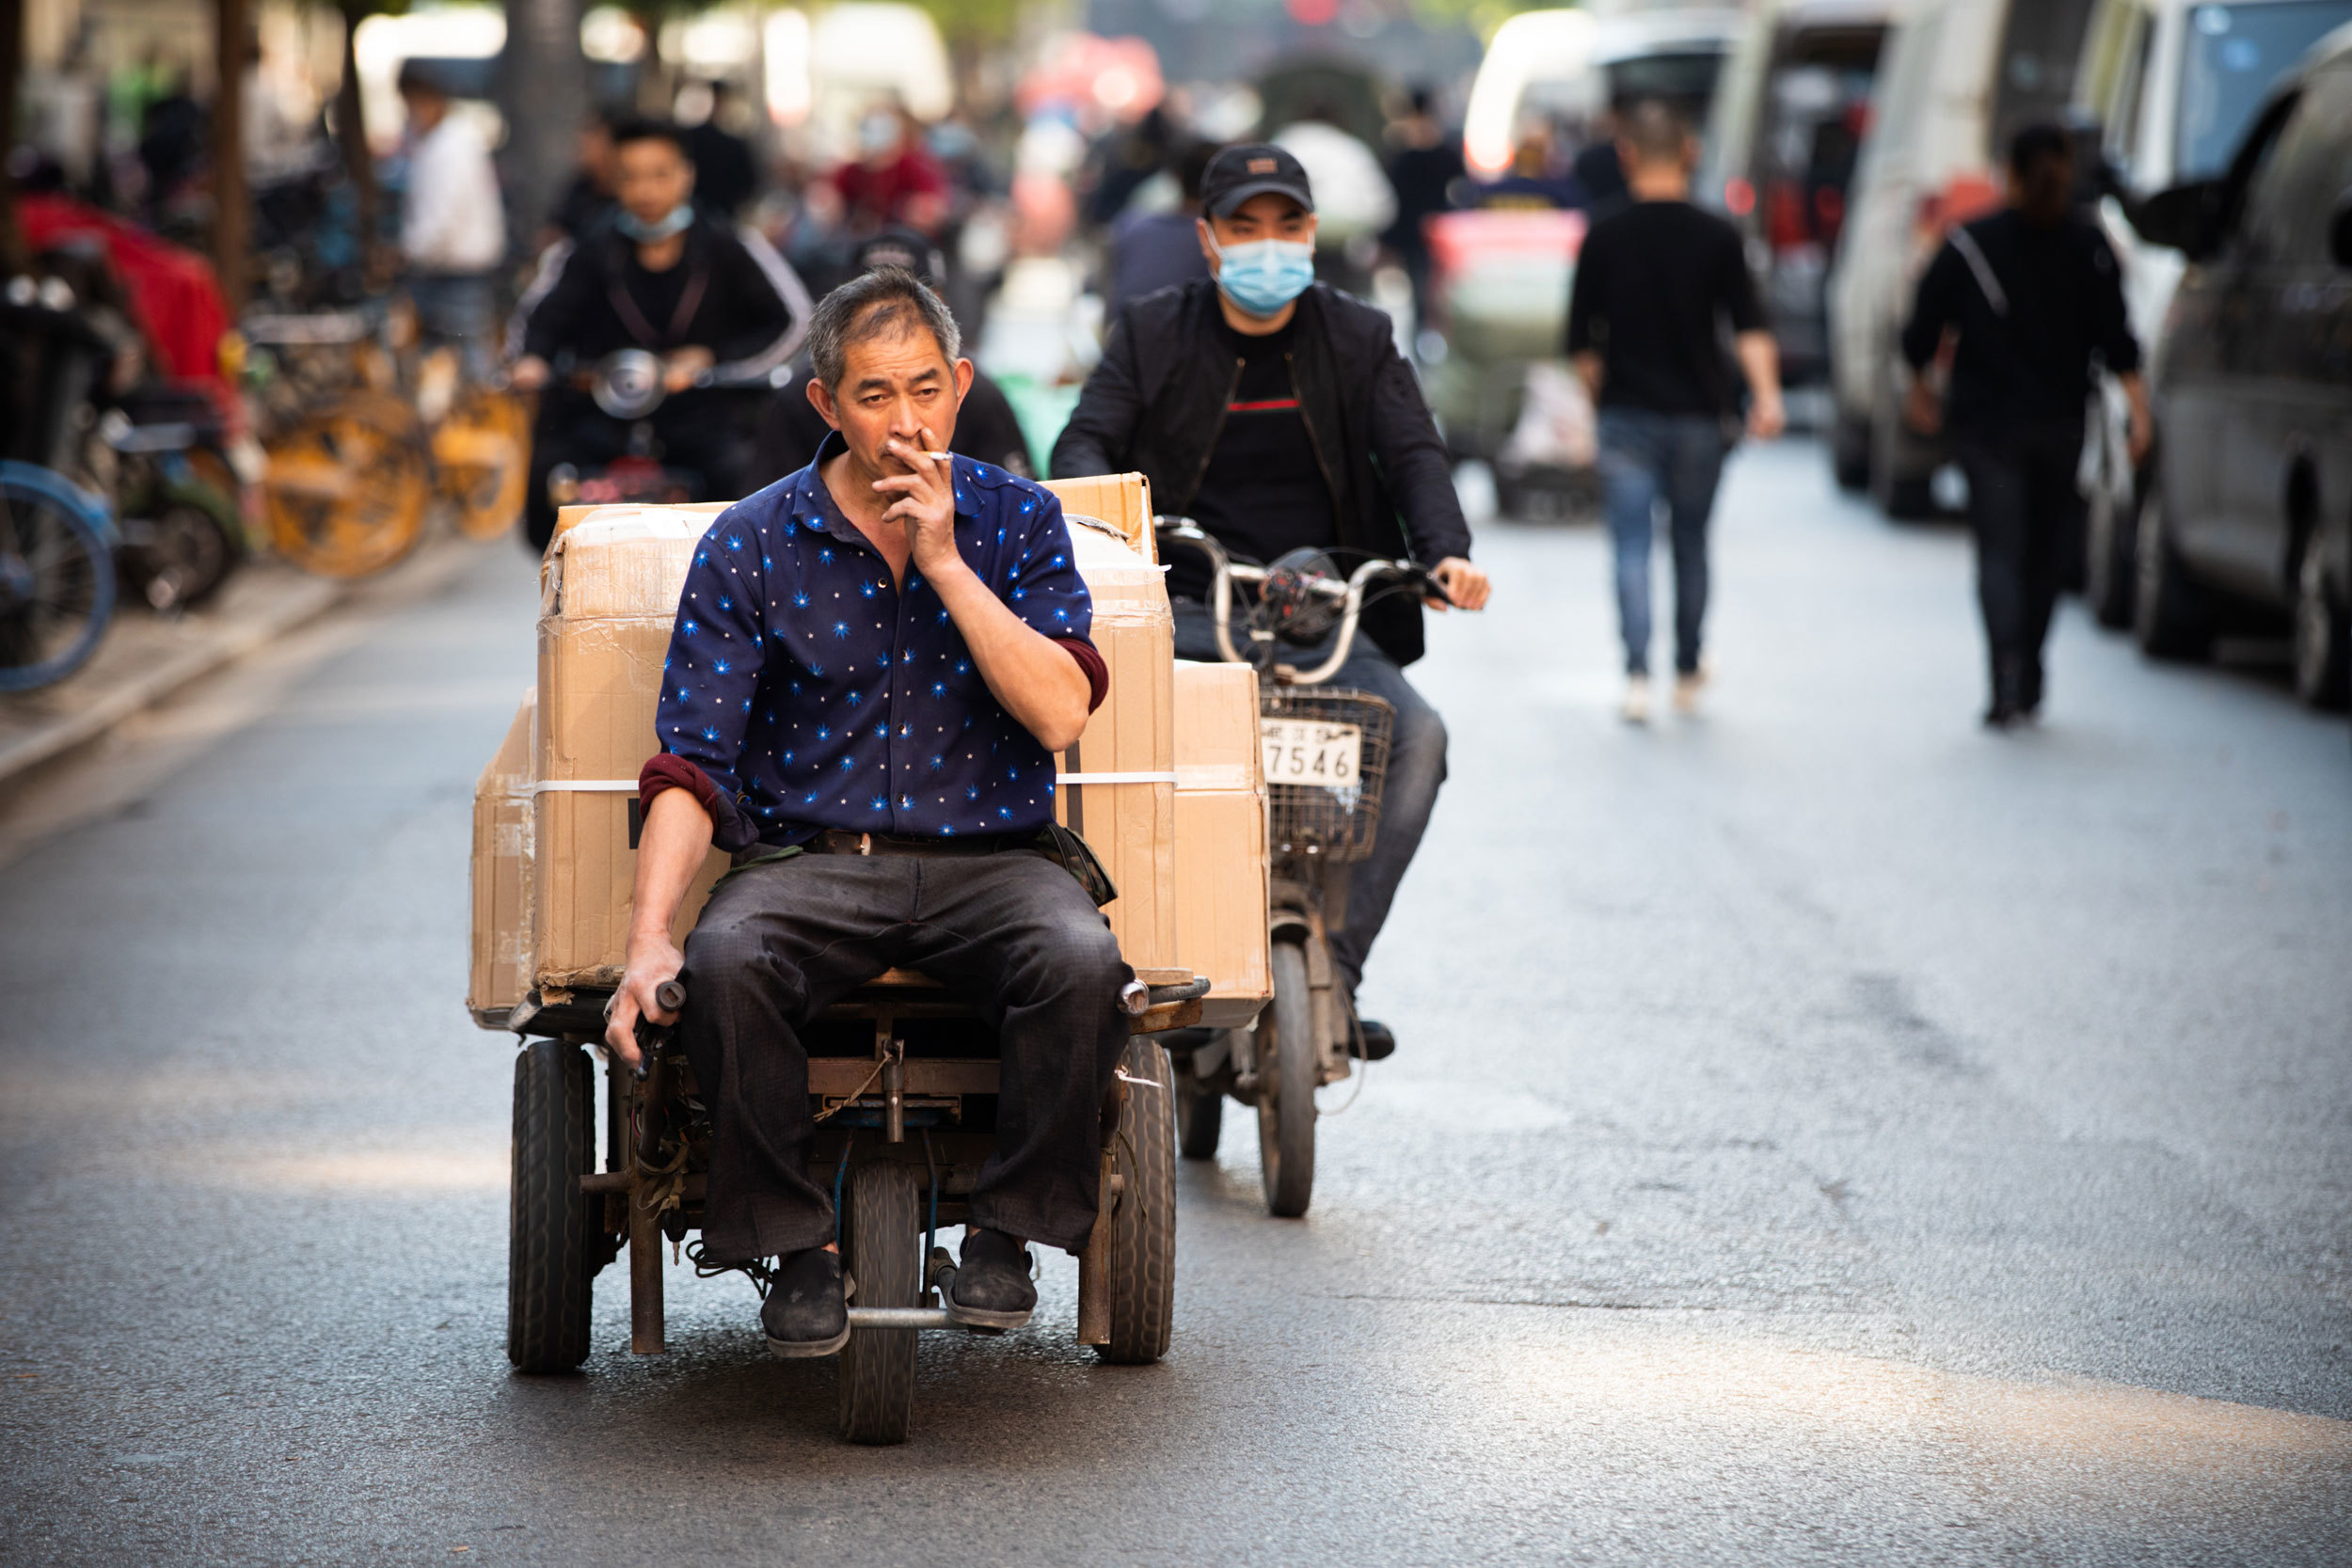 It's become easier to make a living in Wuhan, as industries such as garment-making have returned and the neighbourhoods that live off them are working again. (Saša Petricic/CBC)